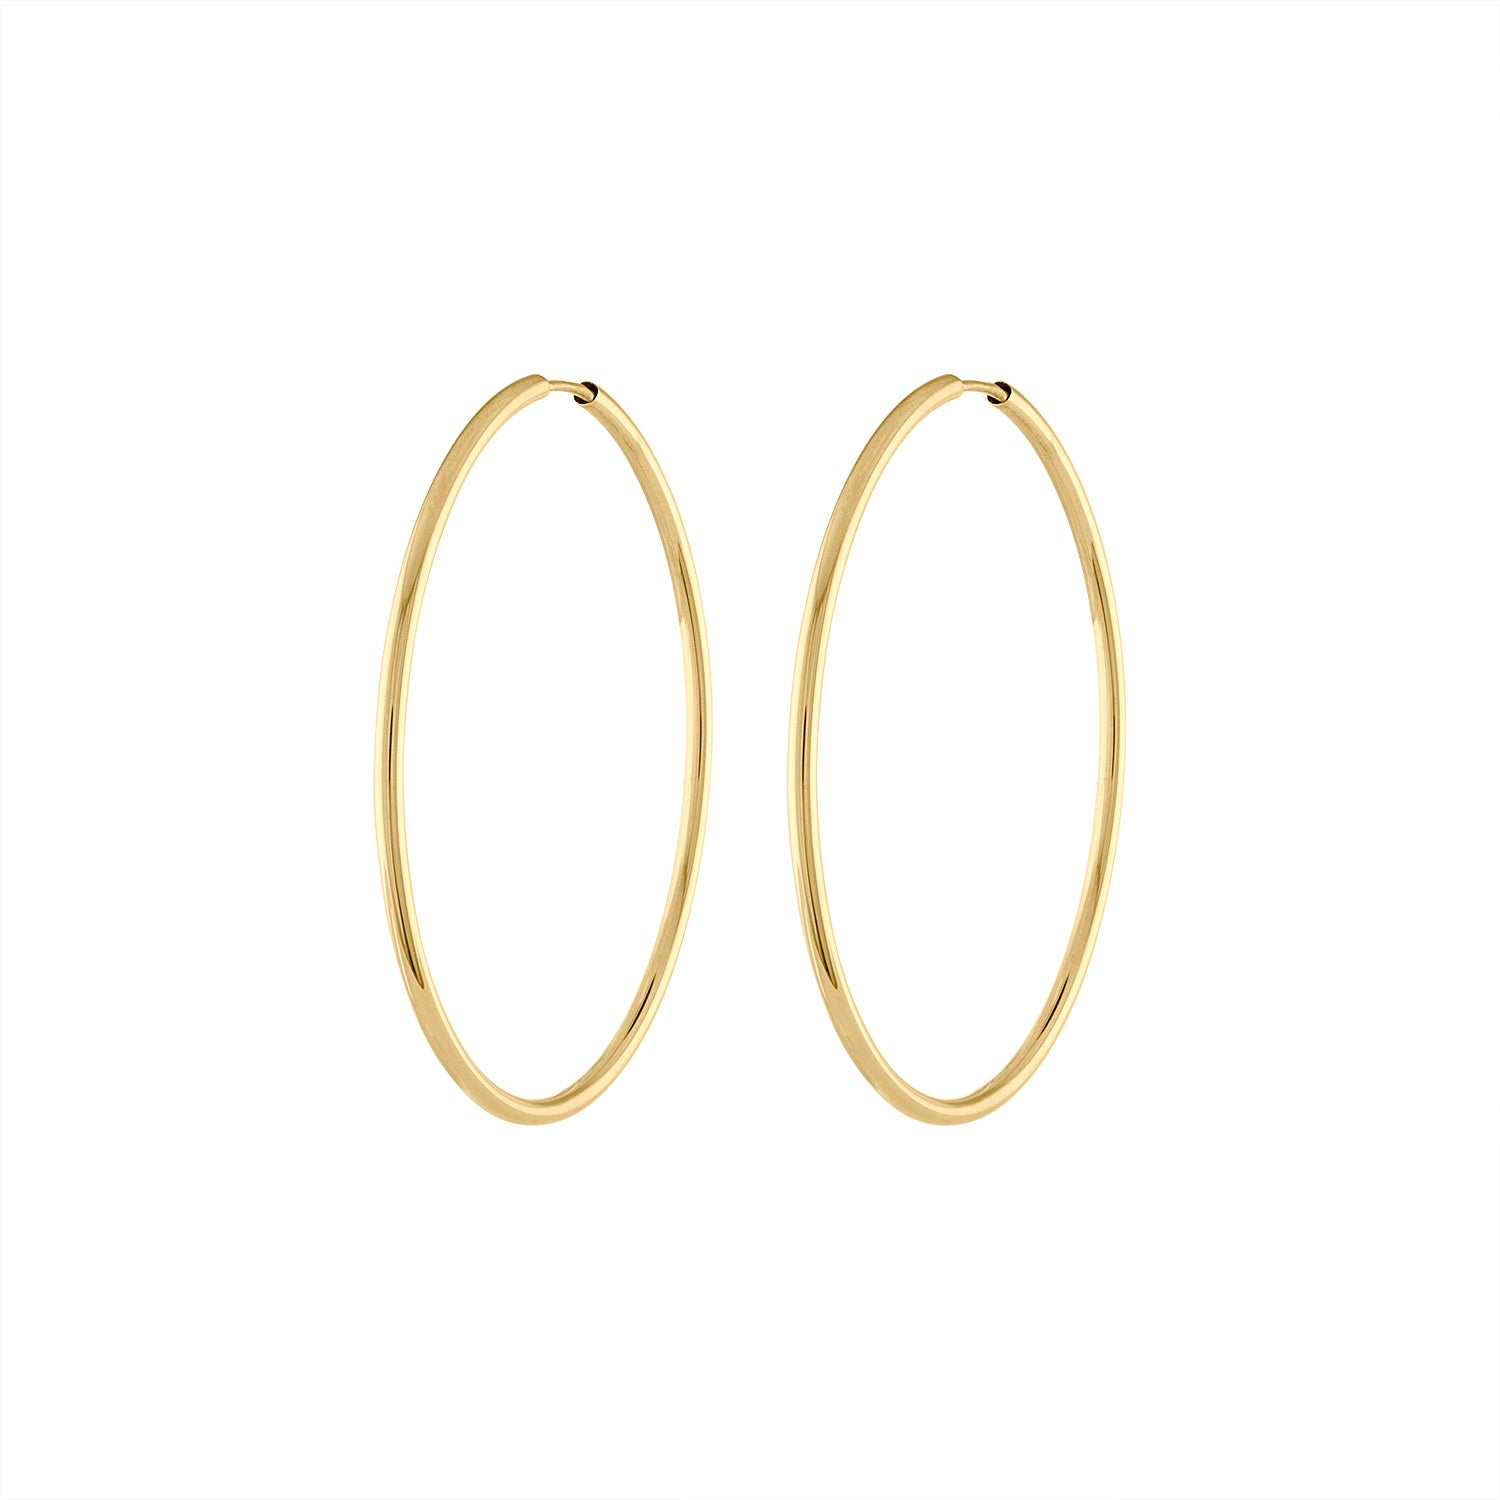 14KT GOLD THIN 30MM ENDLESS HOOP EARRING